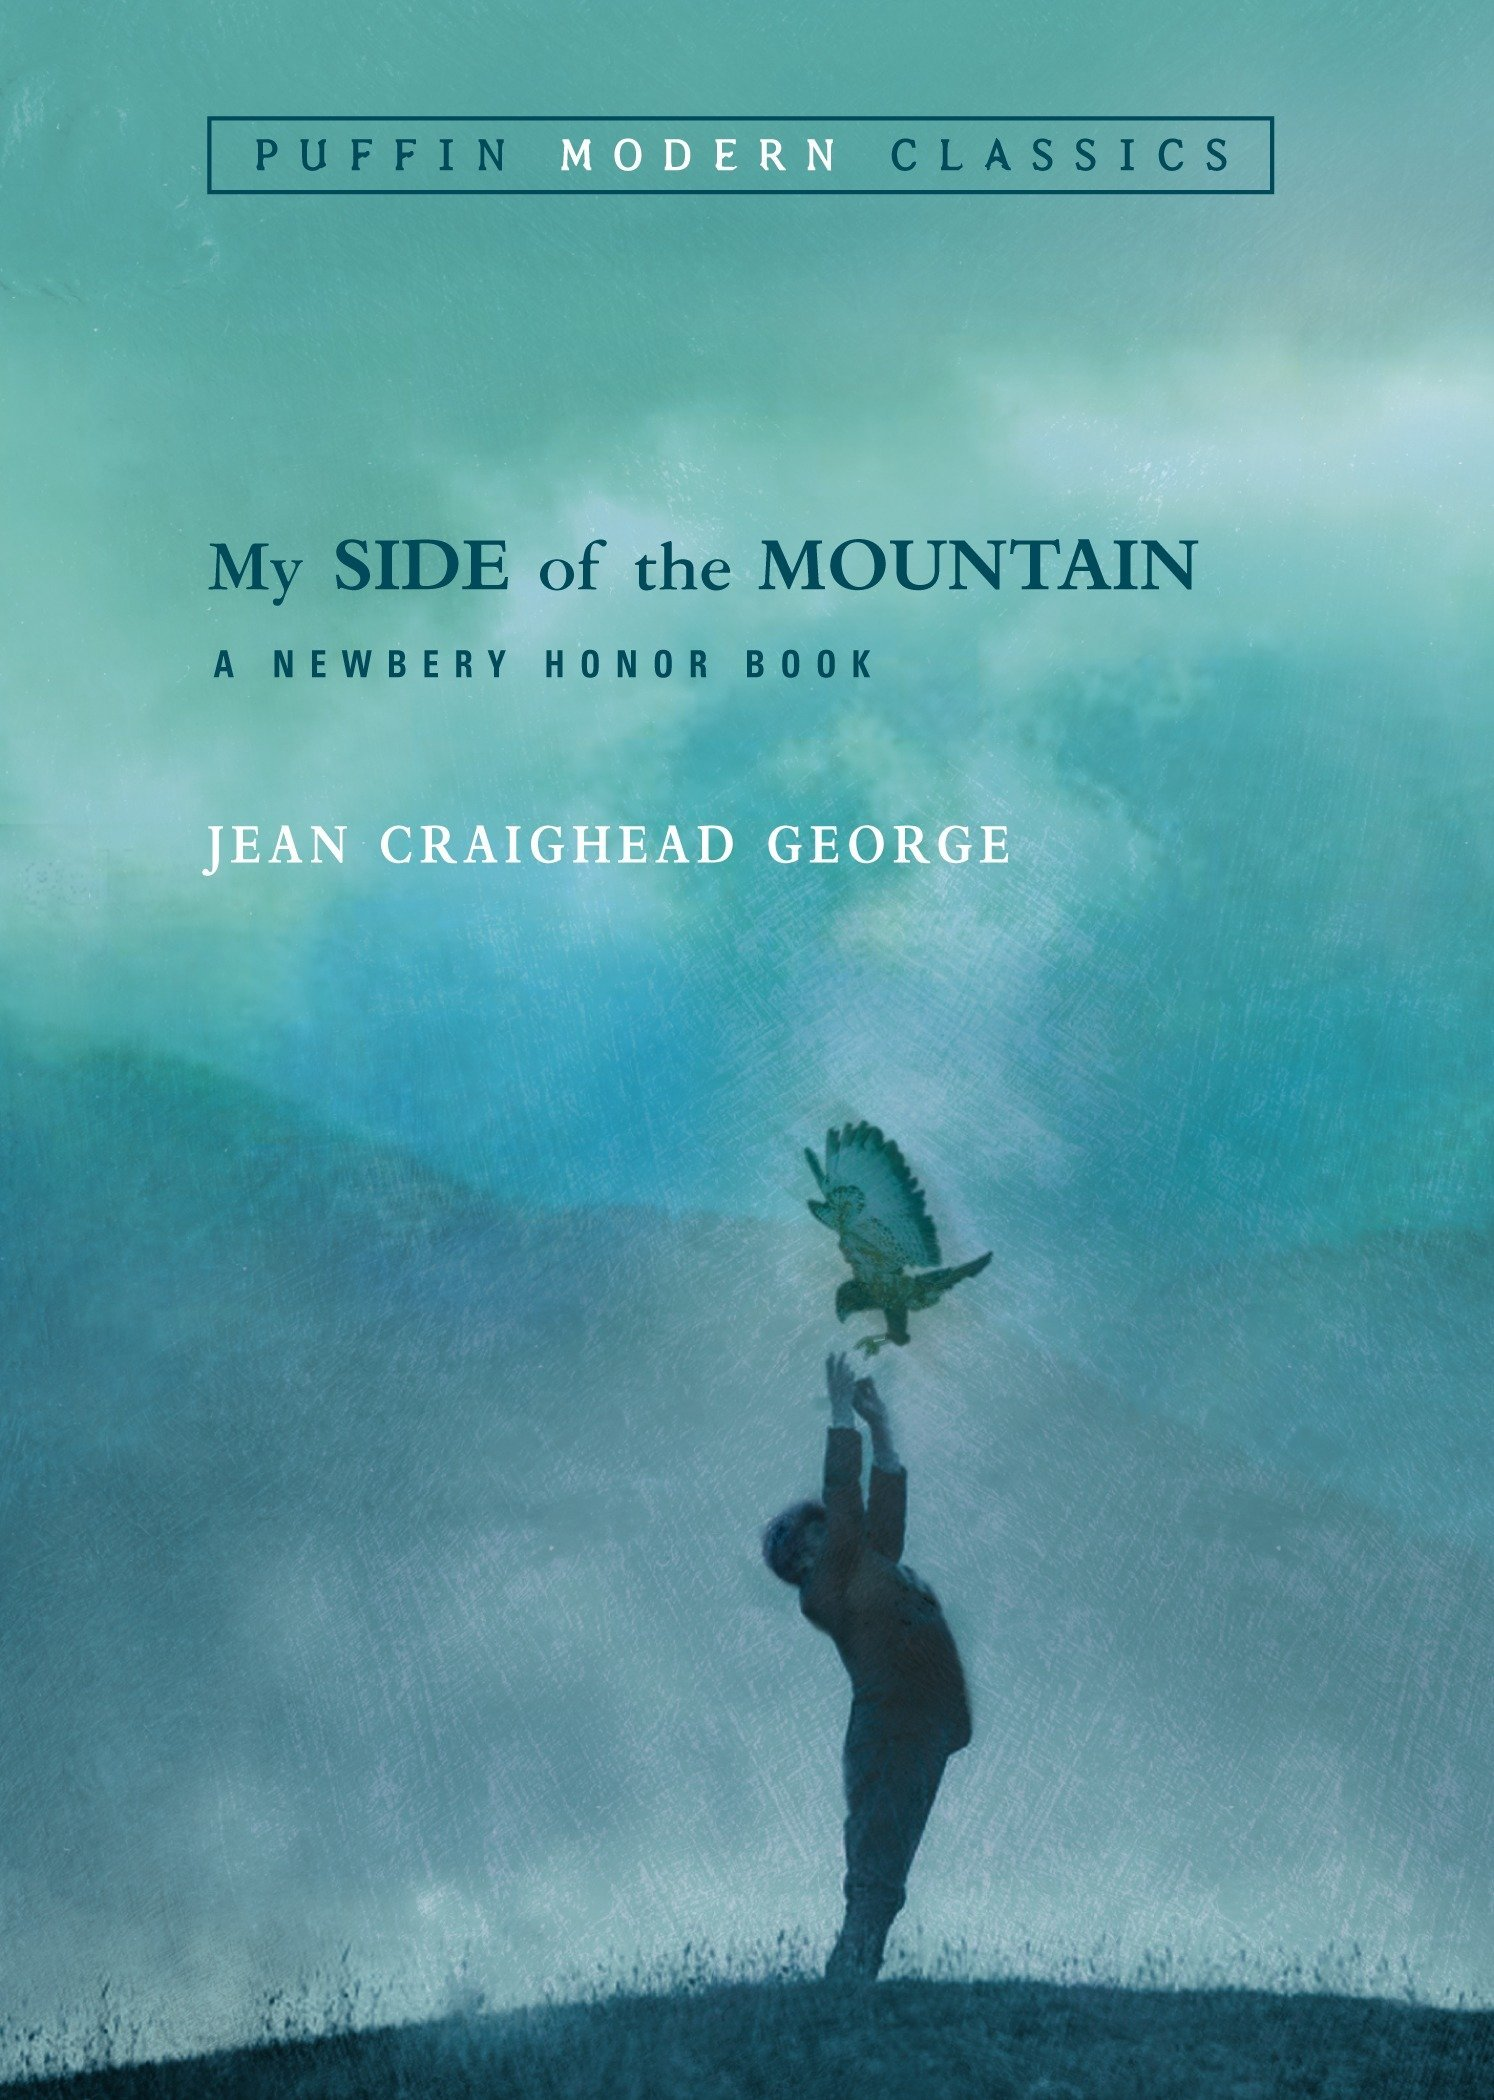 My Side of the Mountain (Puffin Modern Classics) Paperback – April 12, 2004 Jean Craighead George Puffin Books 0142401110 Mountain life